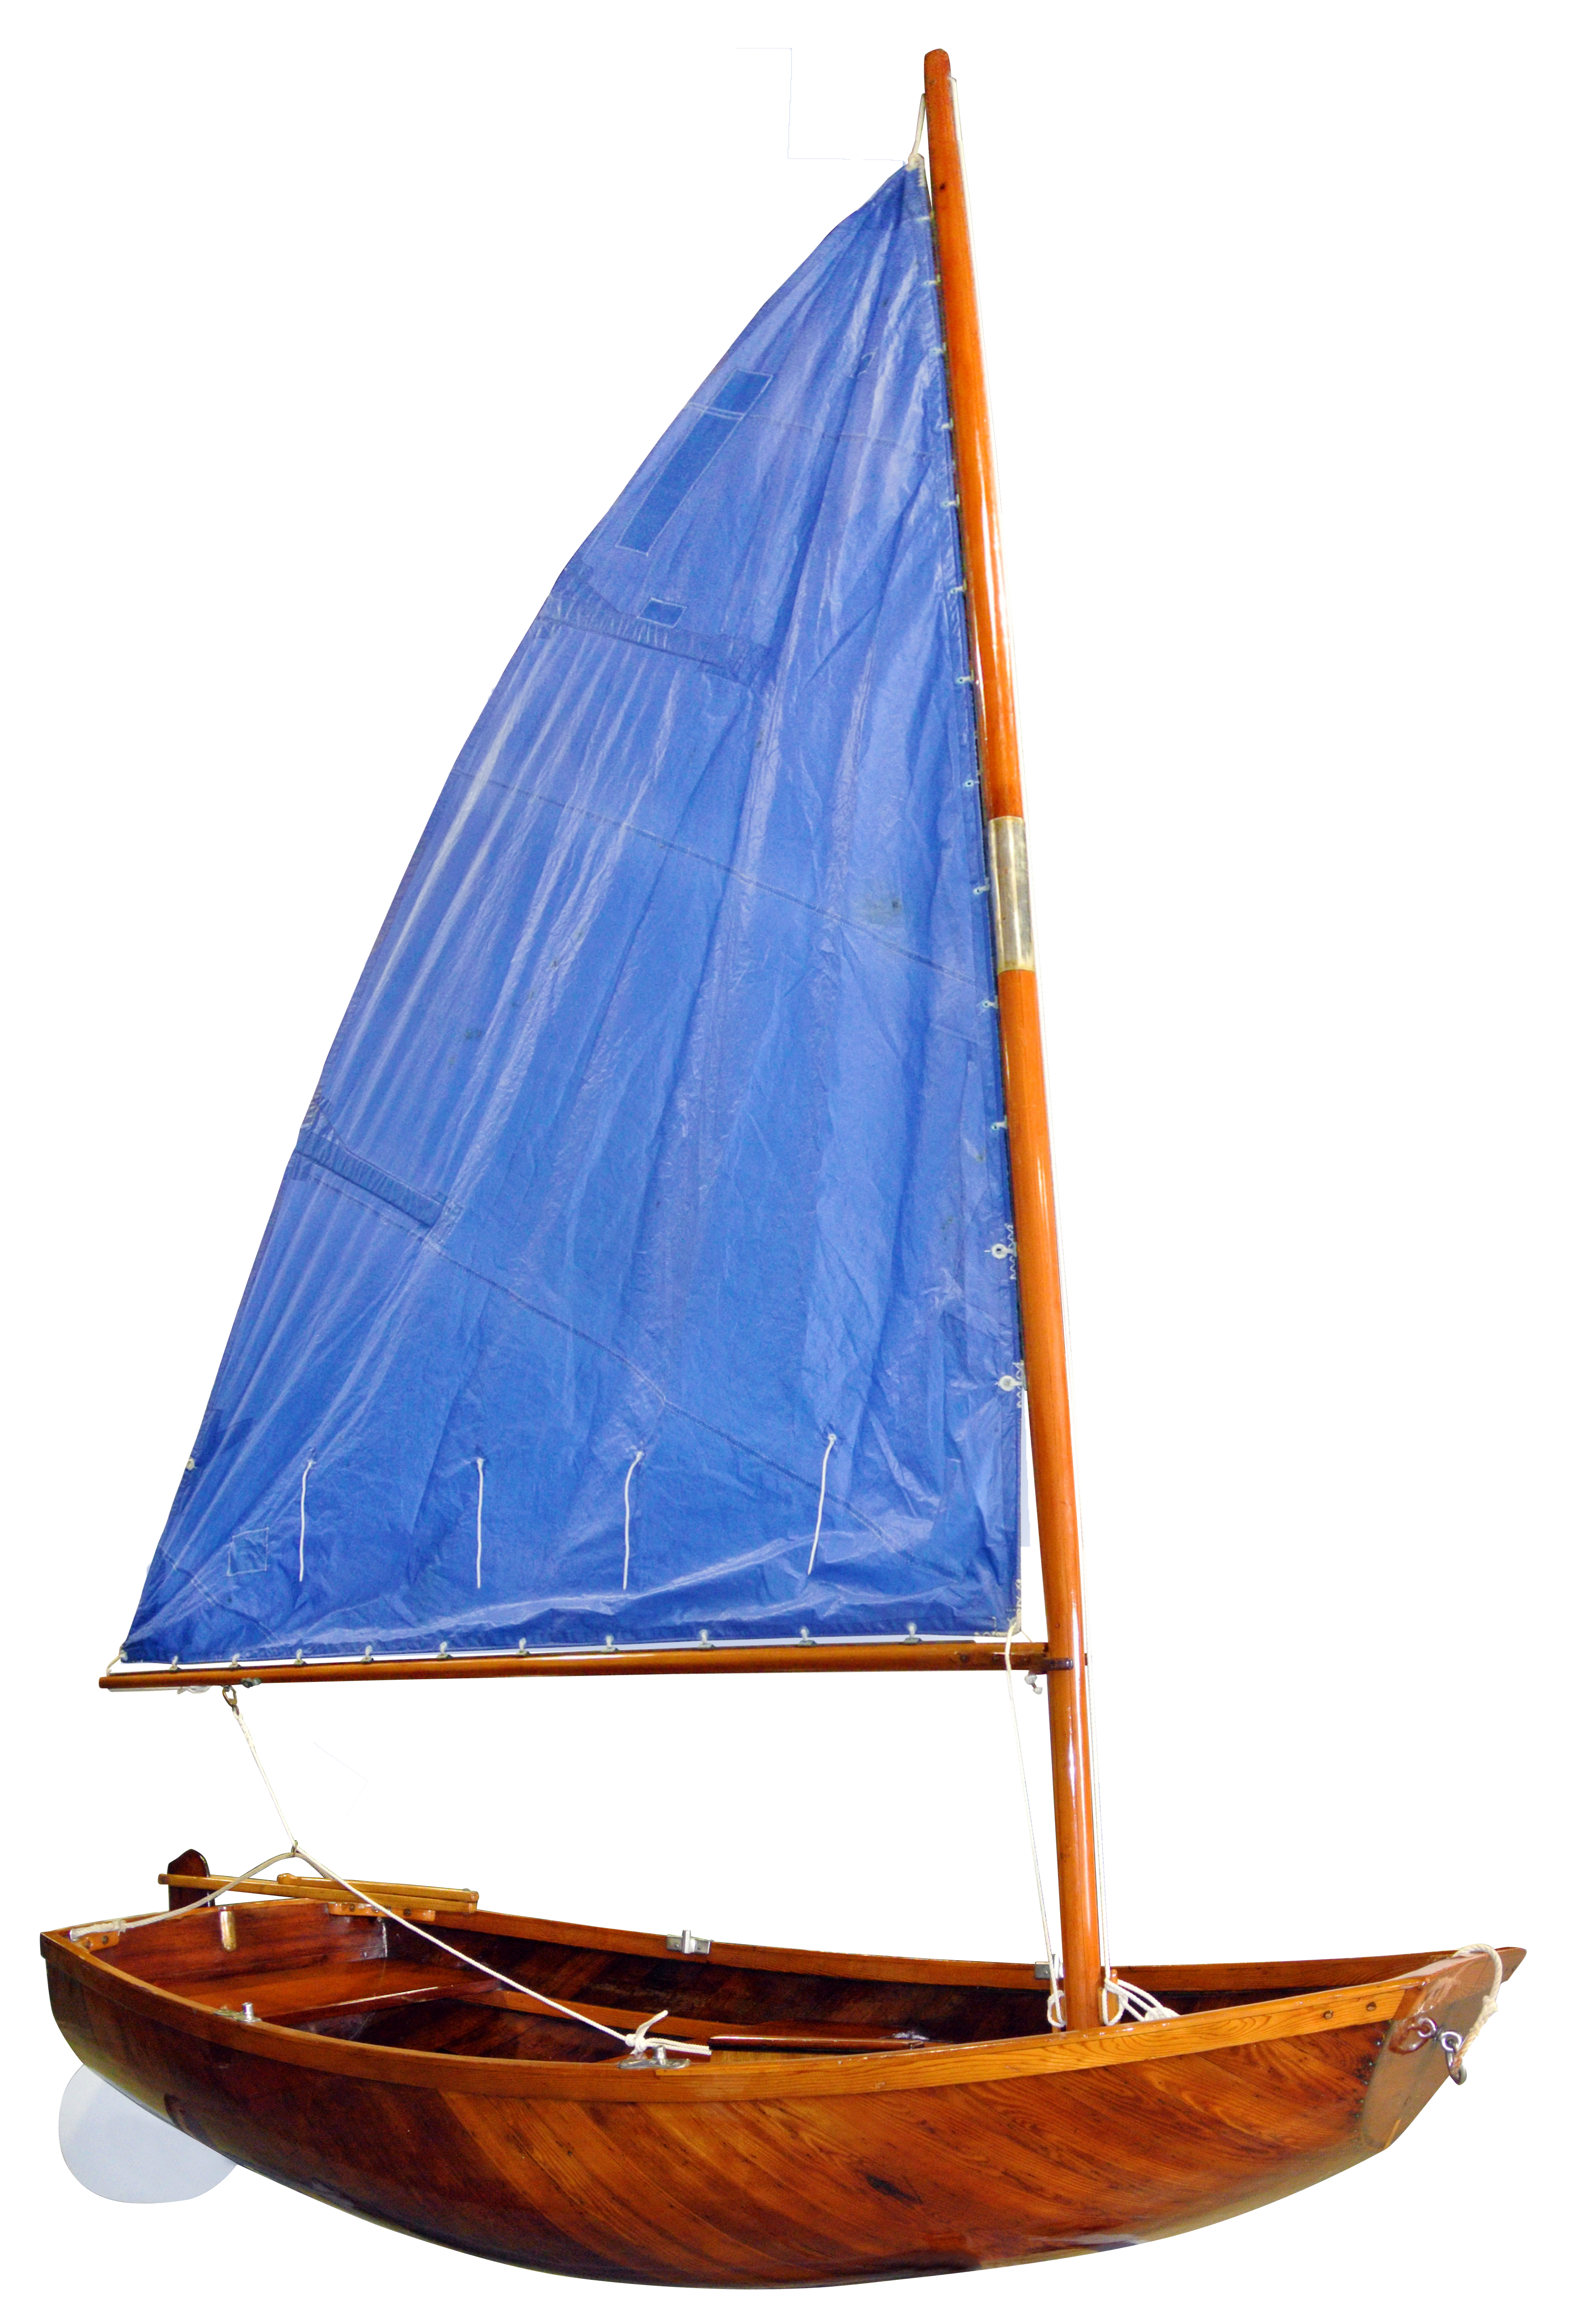 image stock Yacht clipart transparent background. Png sailing images pluspng.